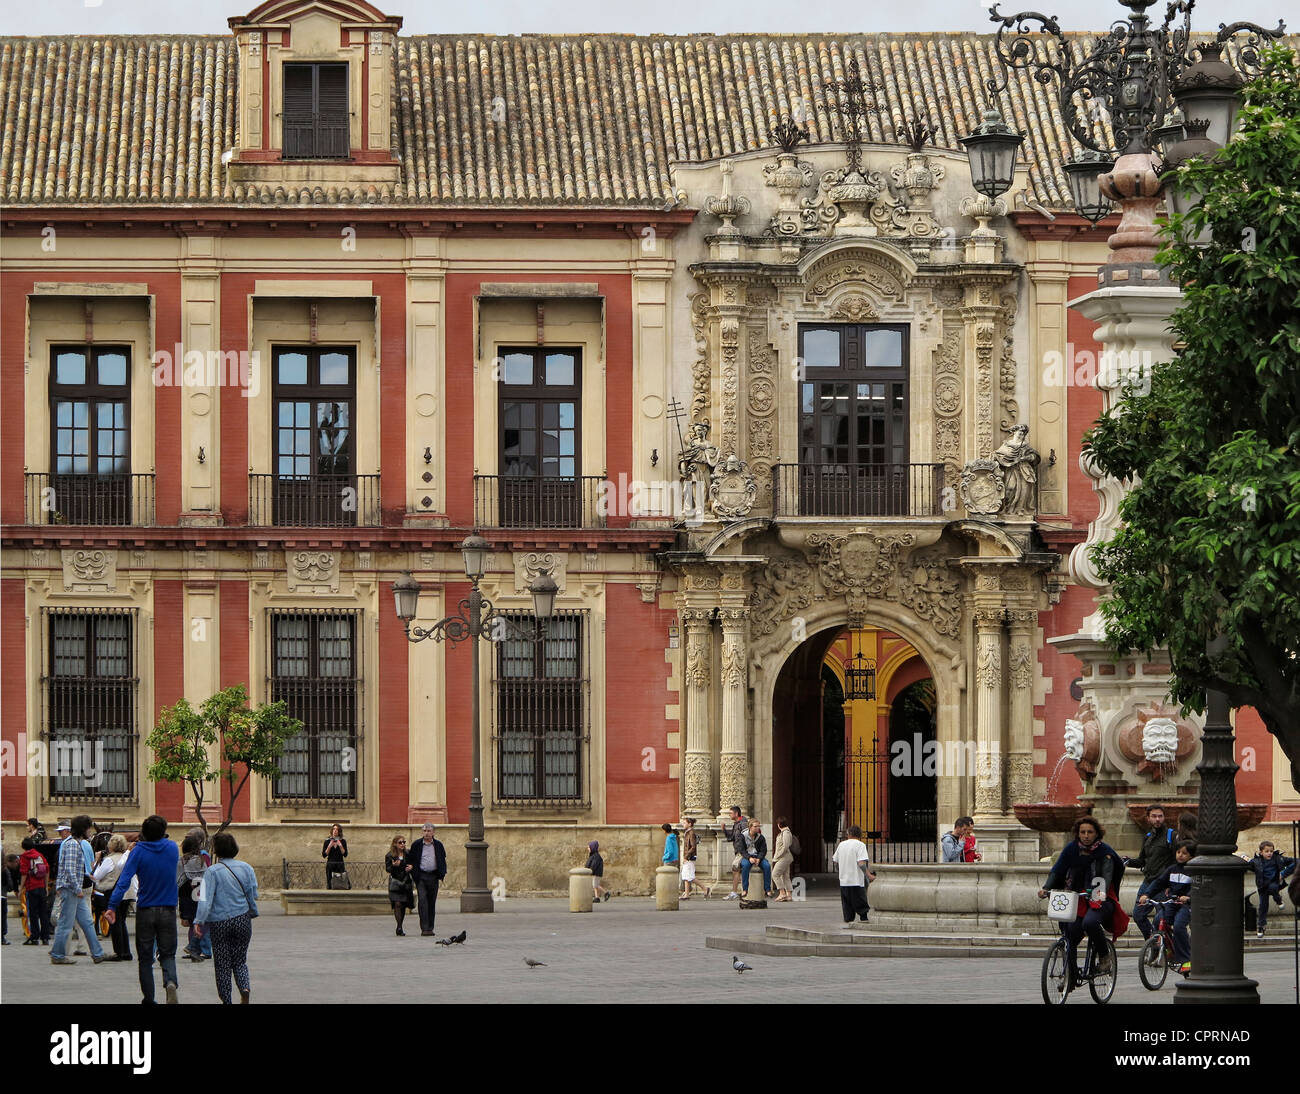 Archbishop Palace in Seville Spain - Stock Image